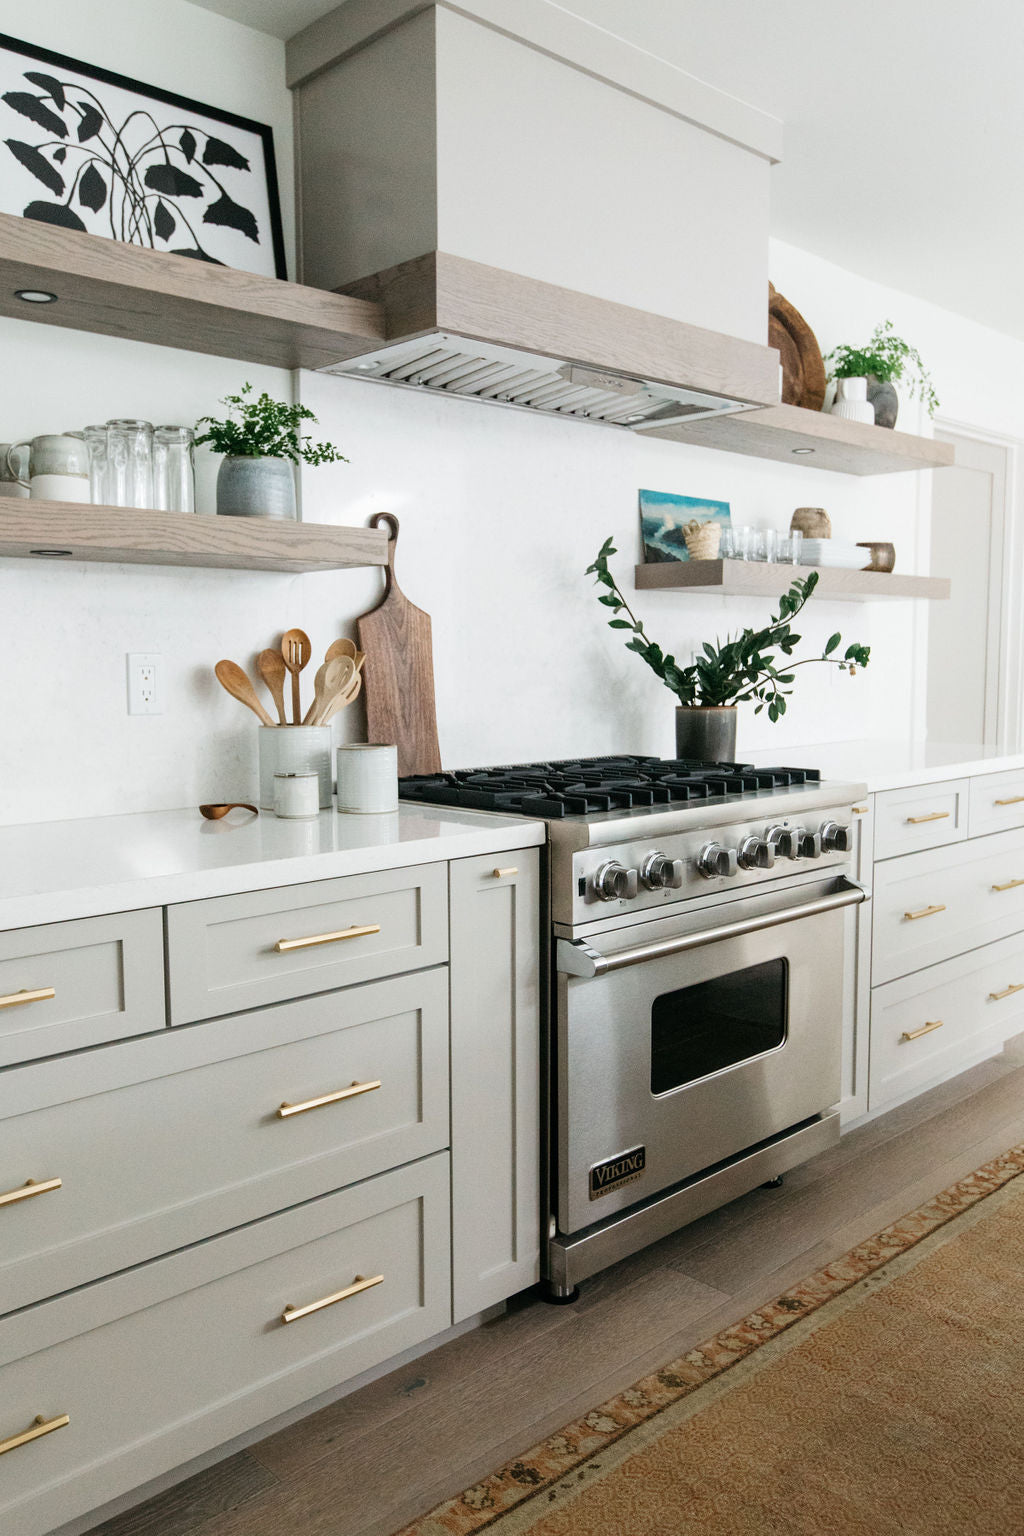 greige design shop + interiors alexandria project kitchen grey cabinets open shelves